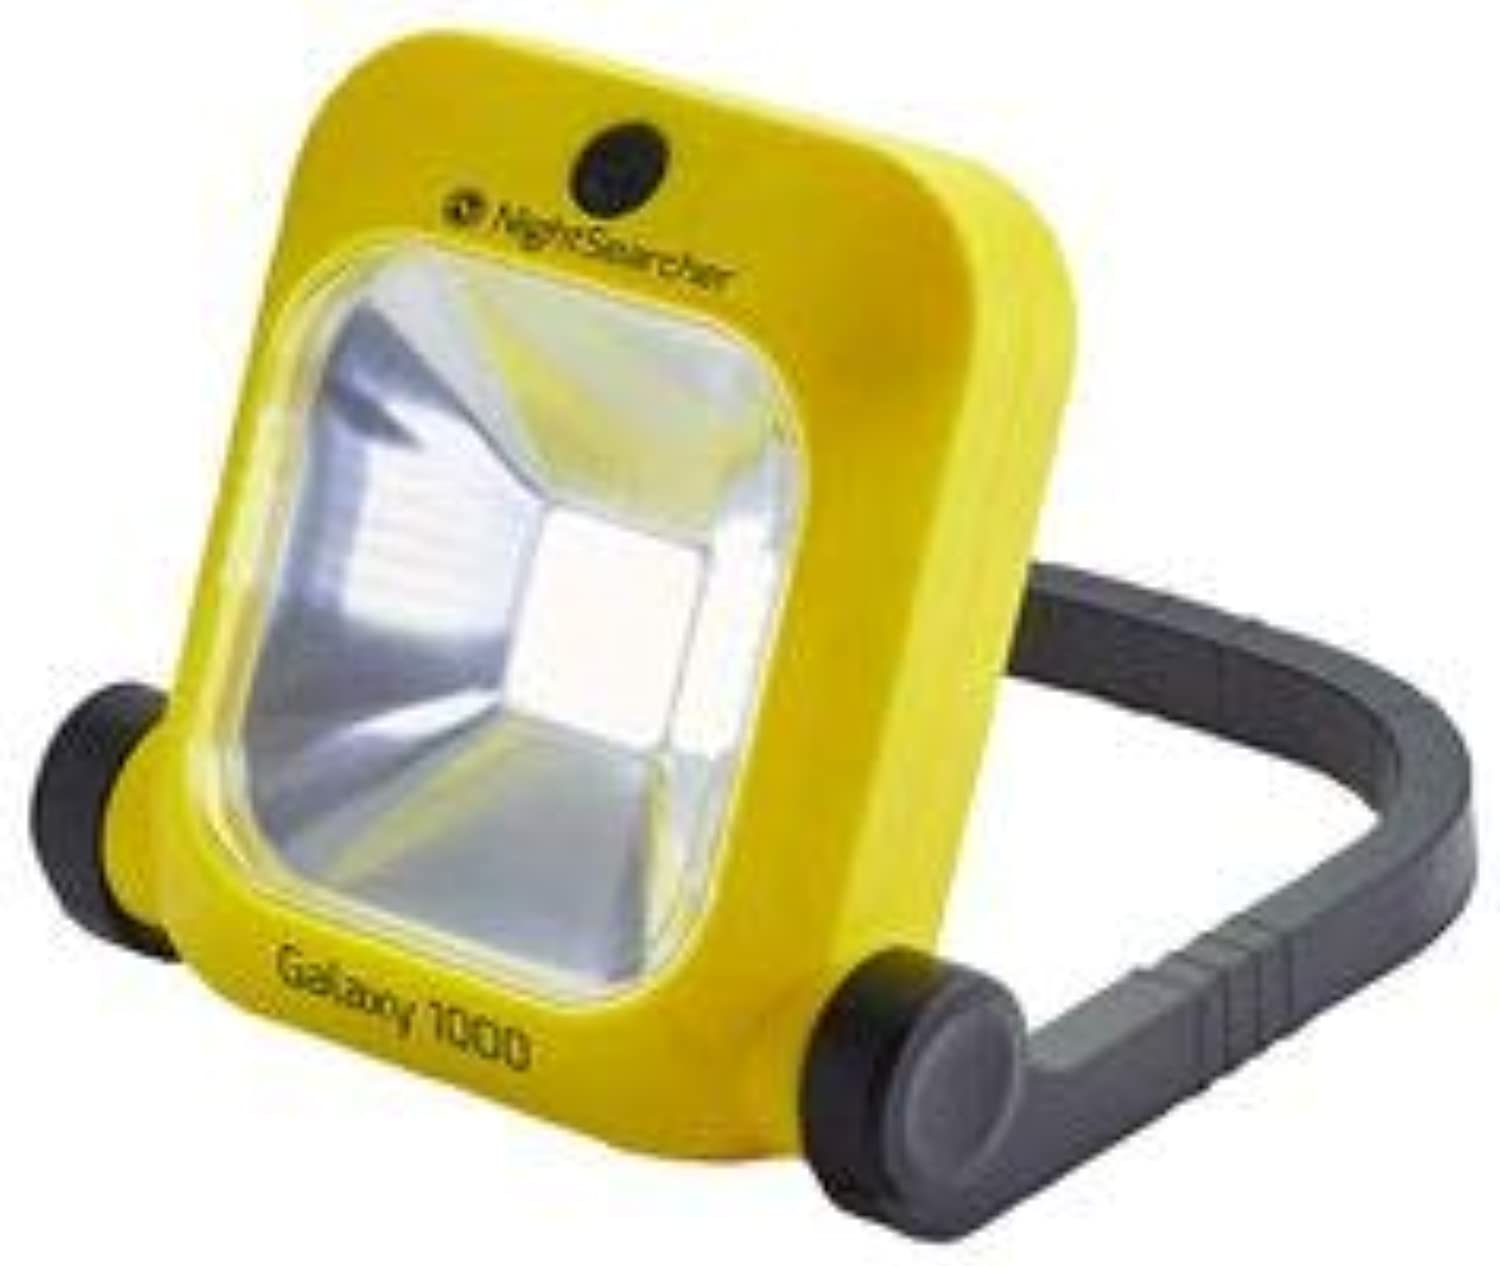 NIGHT SEARCHER Rechargeable Work Light, COB LED, 1000LM Galaxy 1000